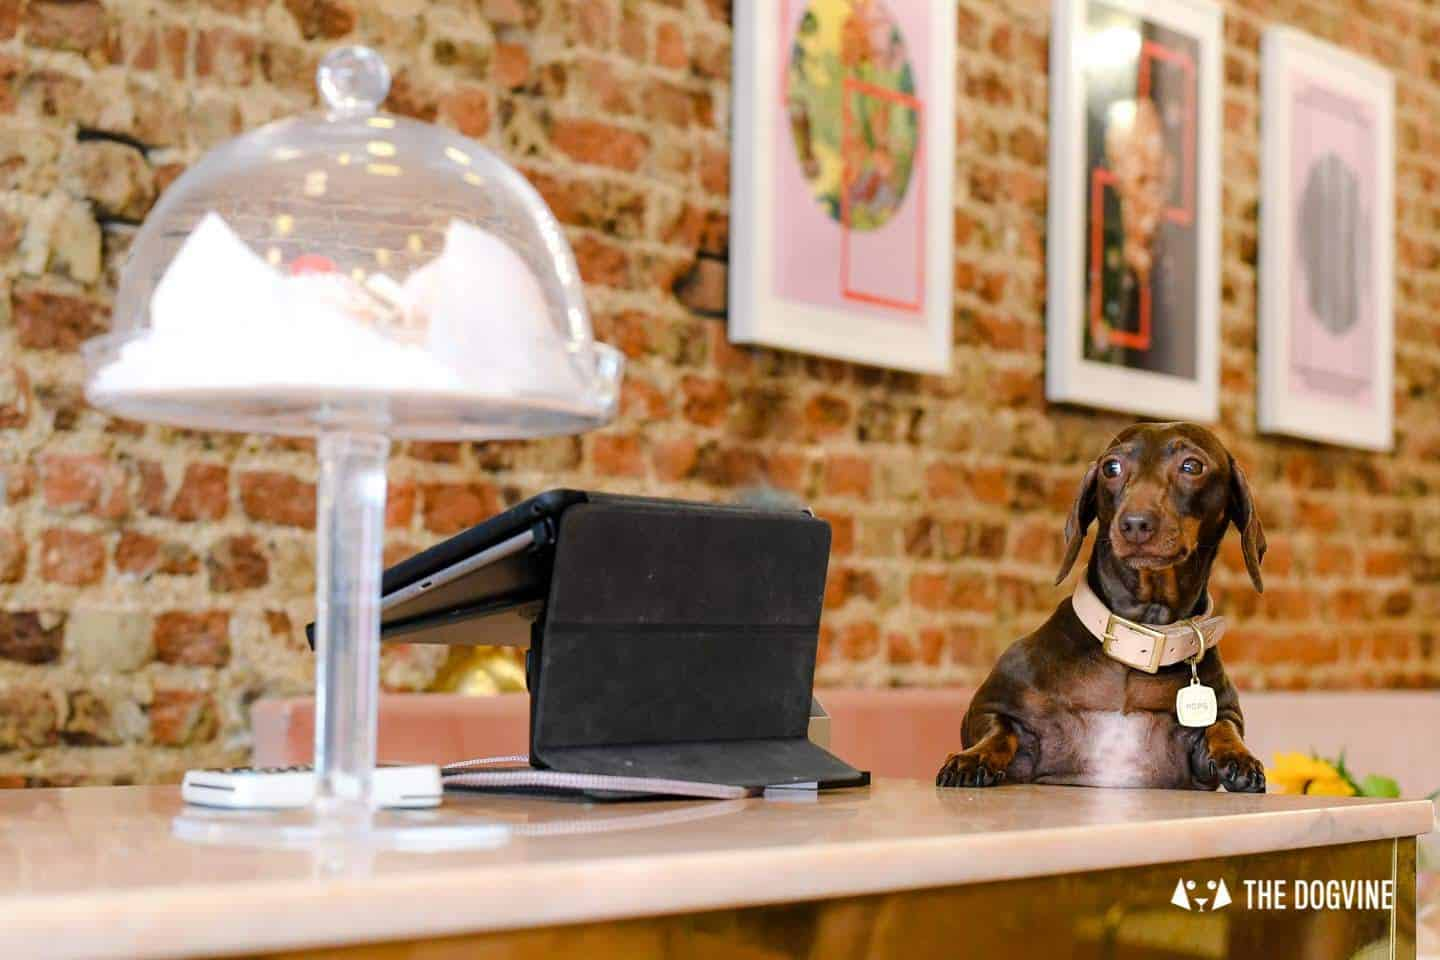 My Dog Friendly London by Pops the Sausage - Palm Vaults 2